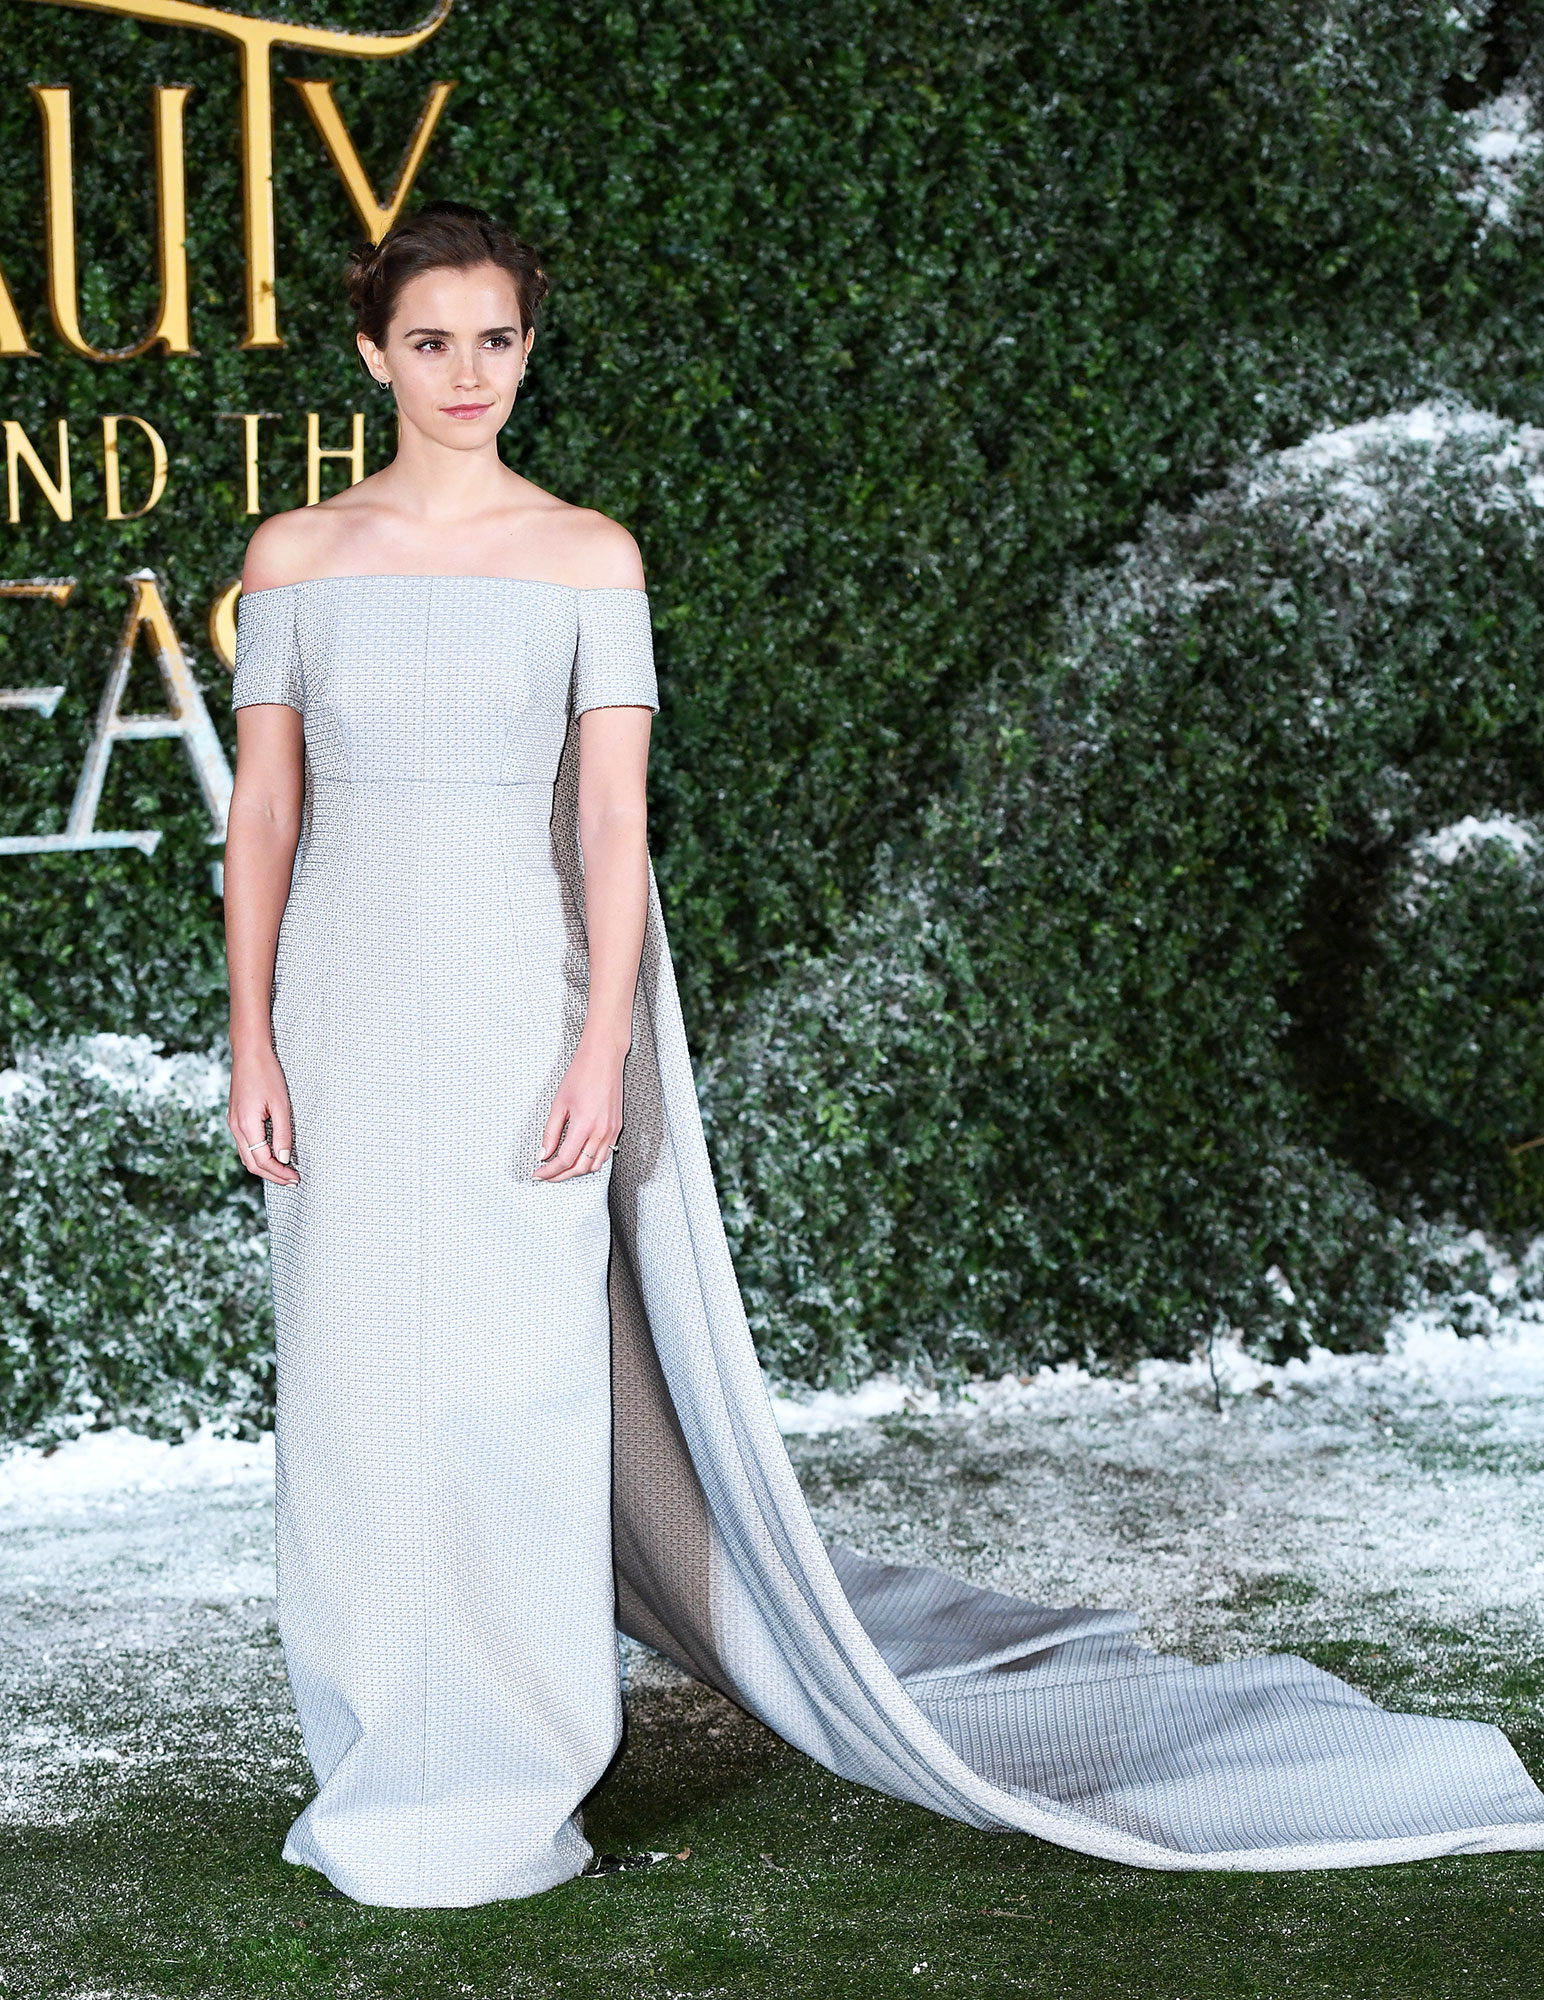 Emma Watson birthday red carpet outfits - A Disney princess IRL, the Beauty and the Beast star looked like a modern-day Belle in a pale blue Emilia Wickstead column gown at the film's London premiere.